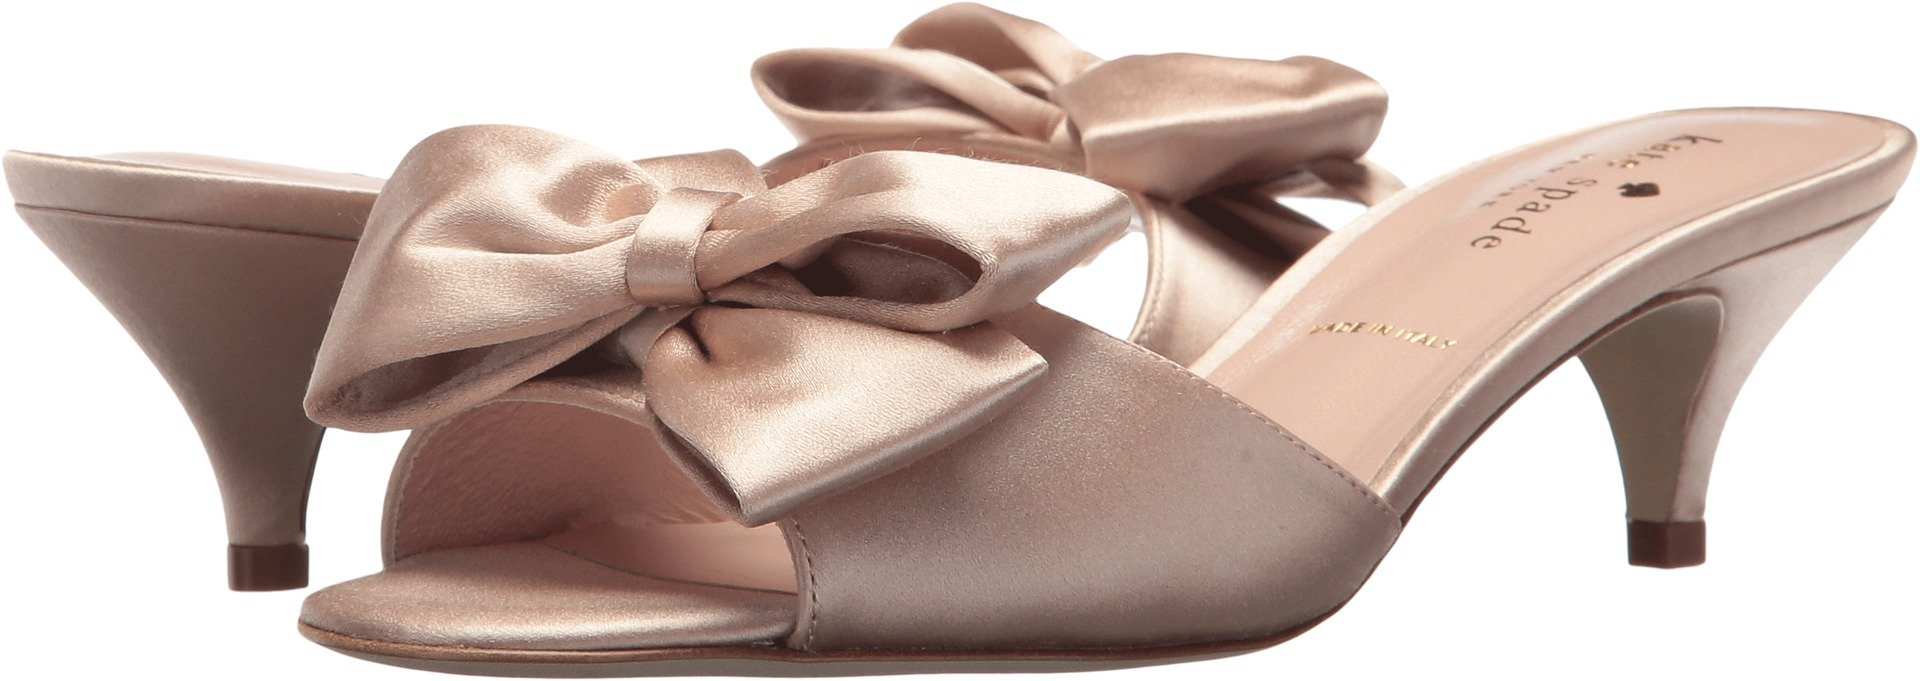 Kate Spade New York Women's Plaza, Blush, 8.5 M US